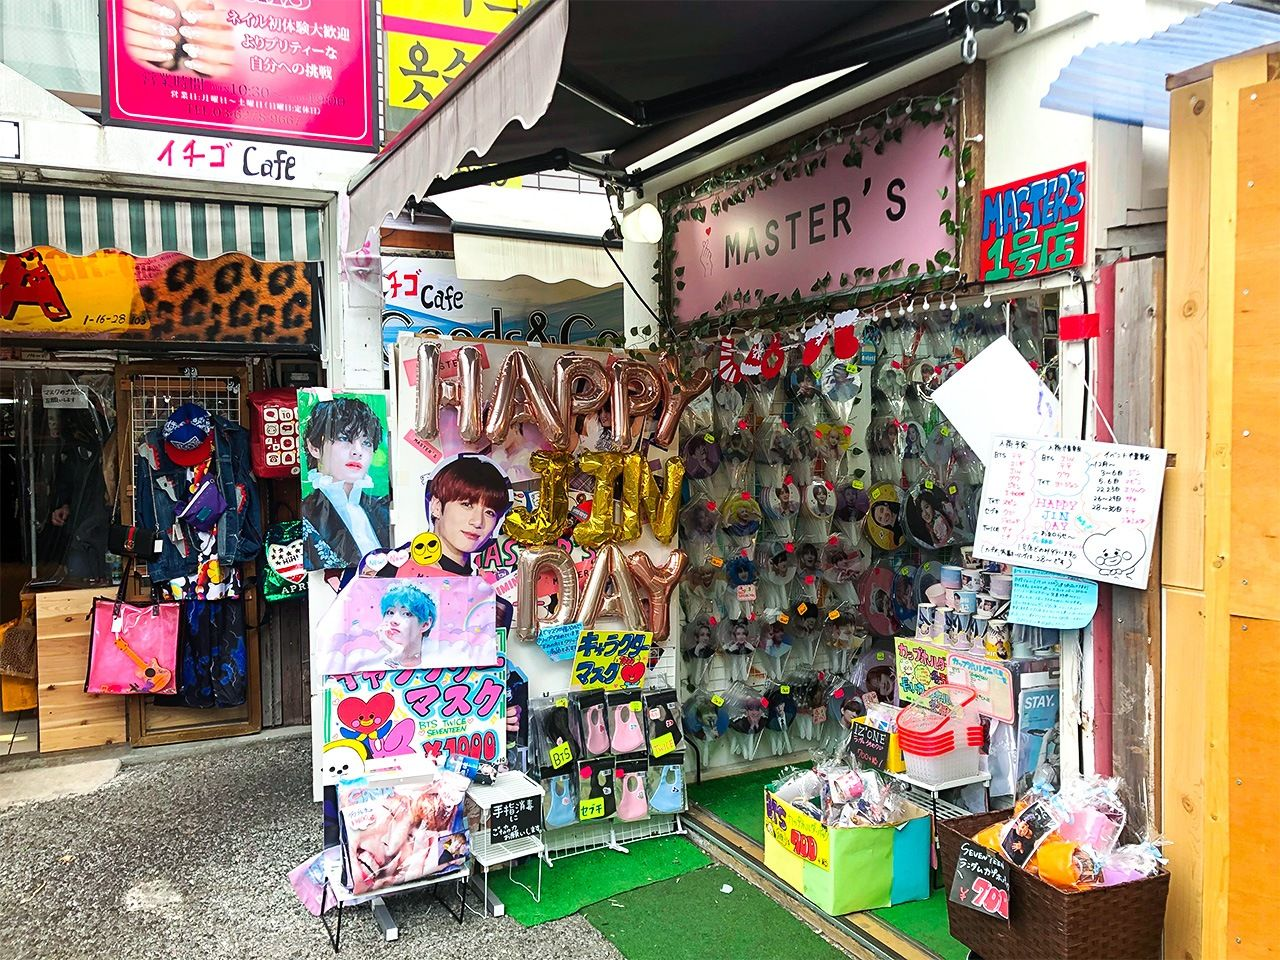 Shops selling posters and other items featuring South Korean pop stars dot the neighborhood.